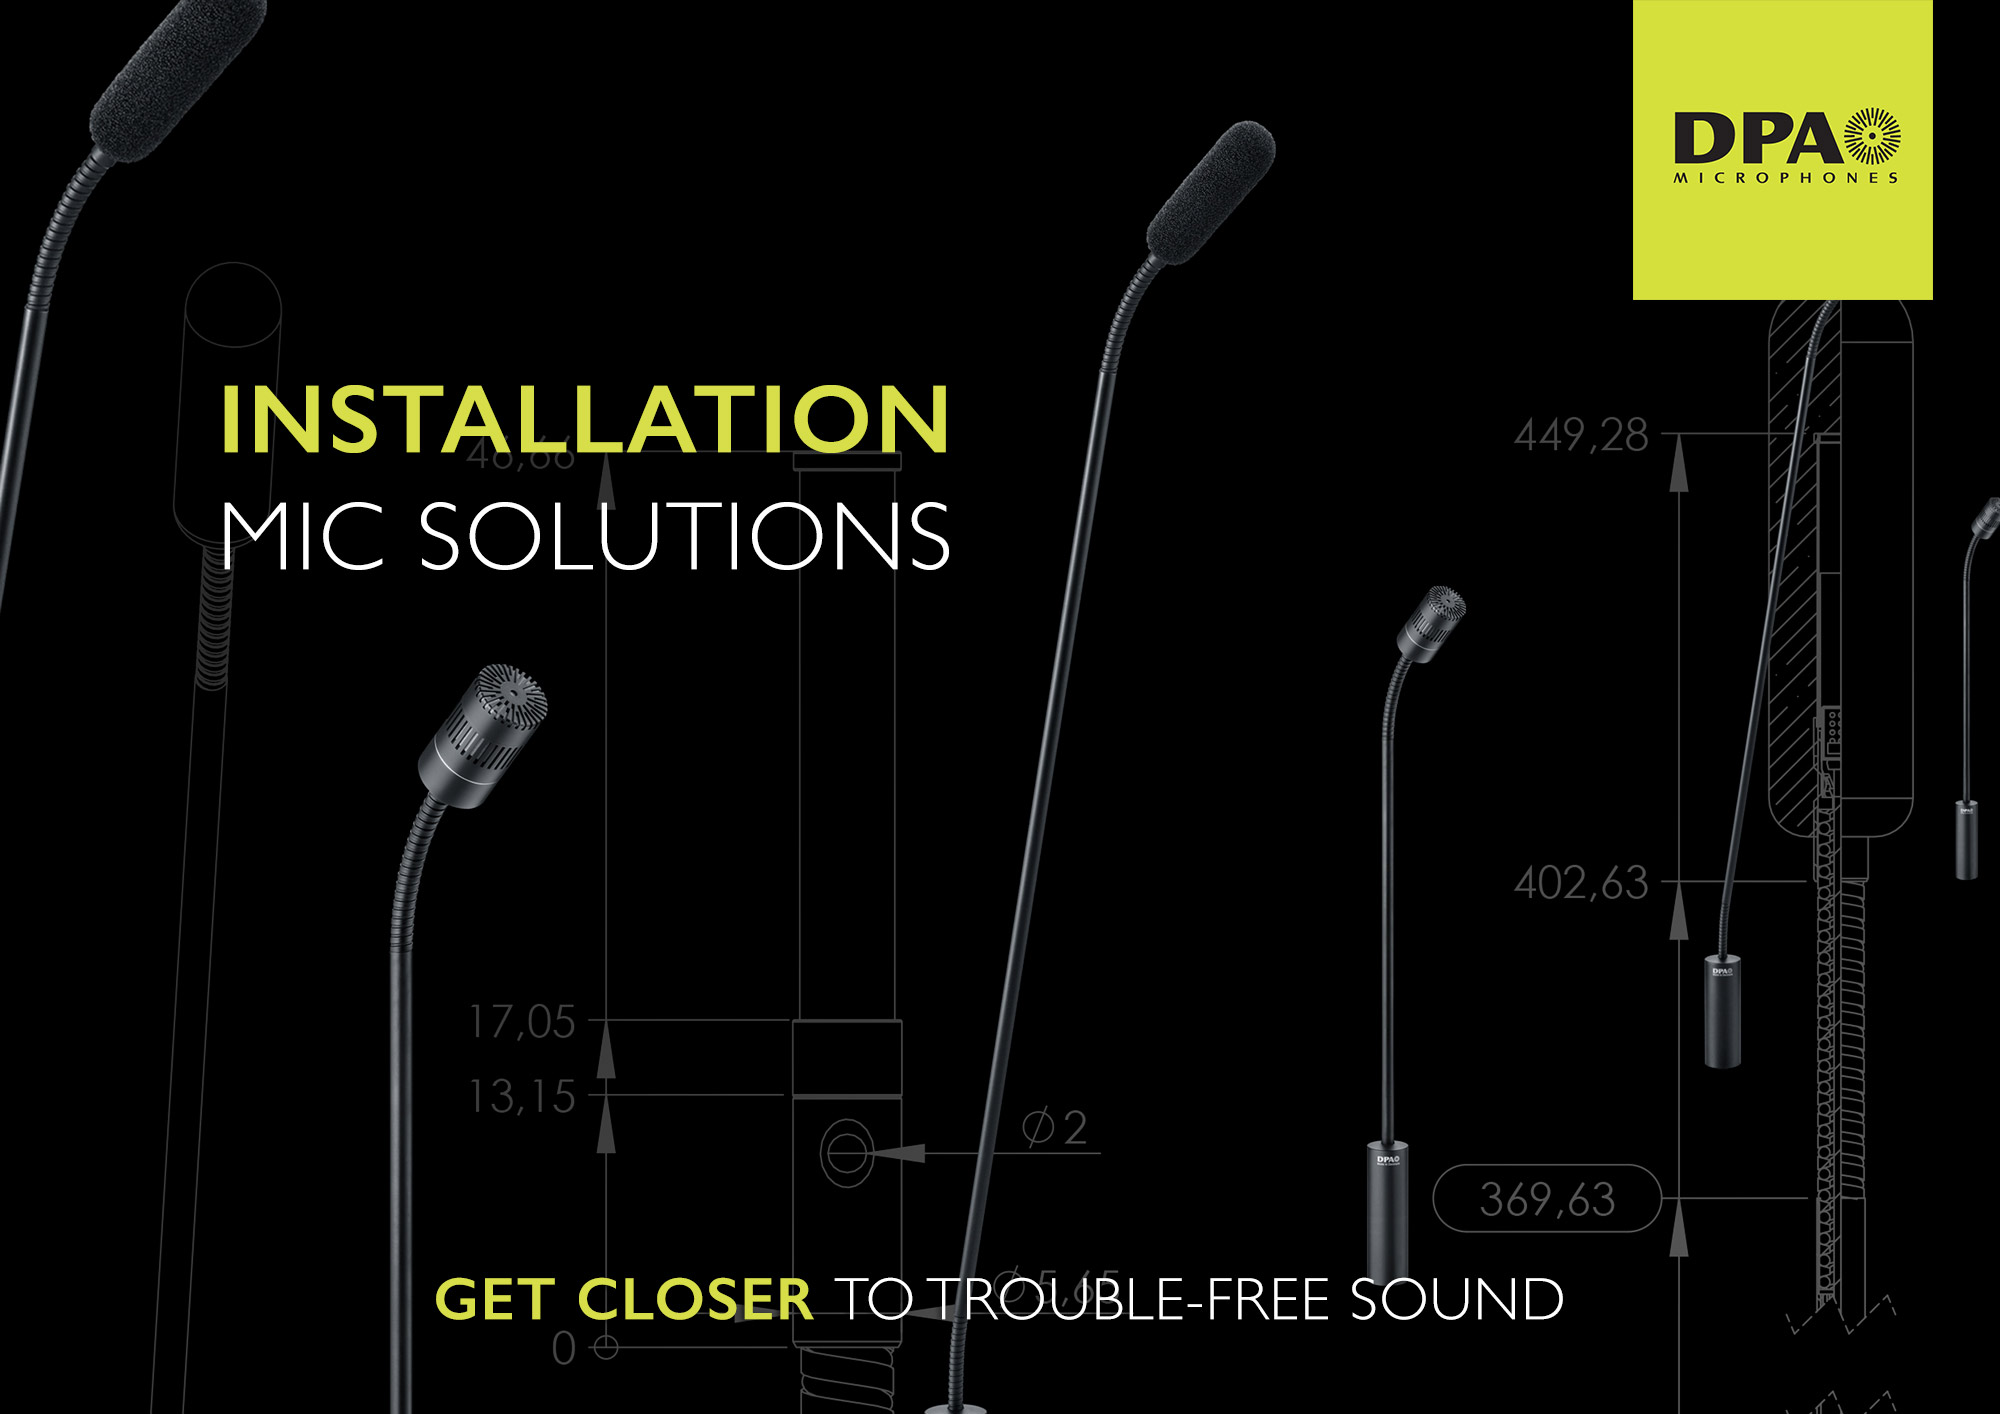 DPA Installation Microphone Solutions